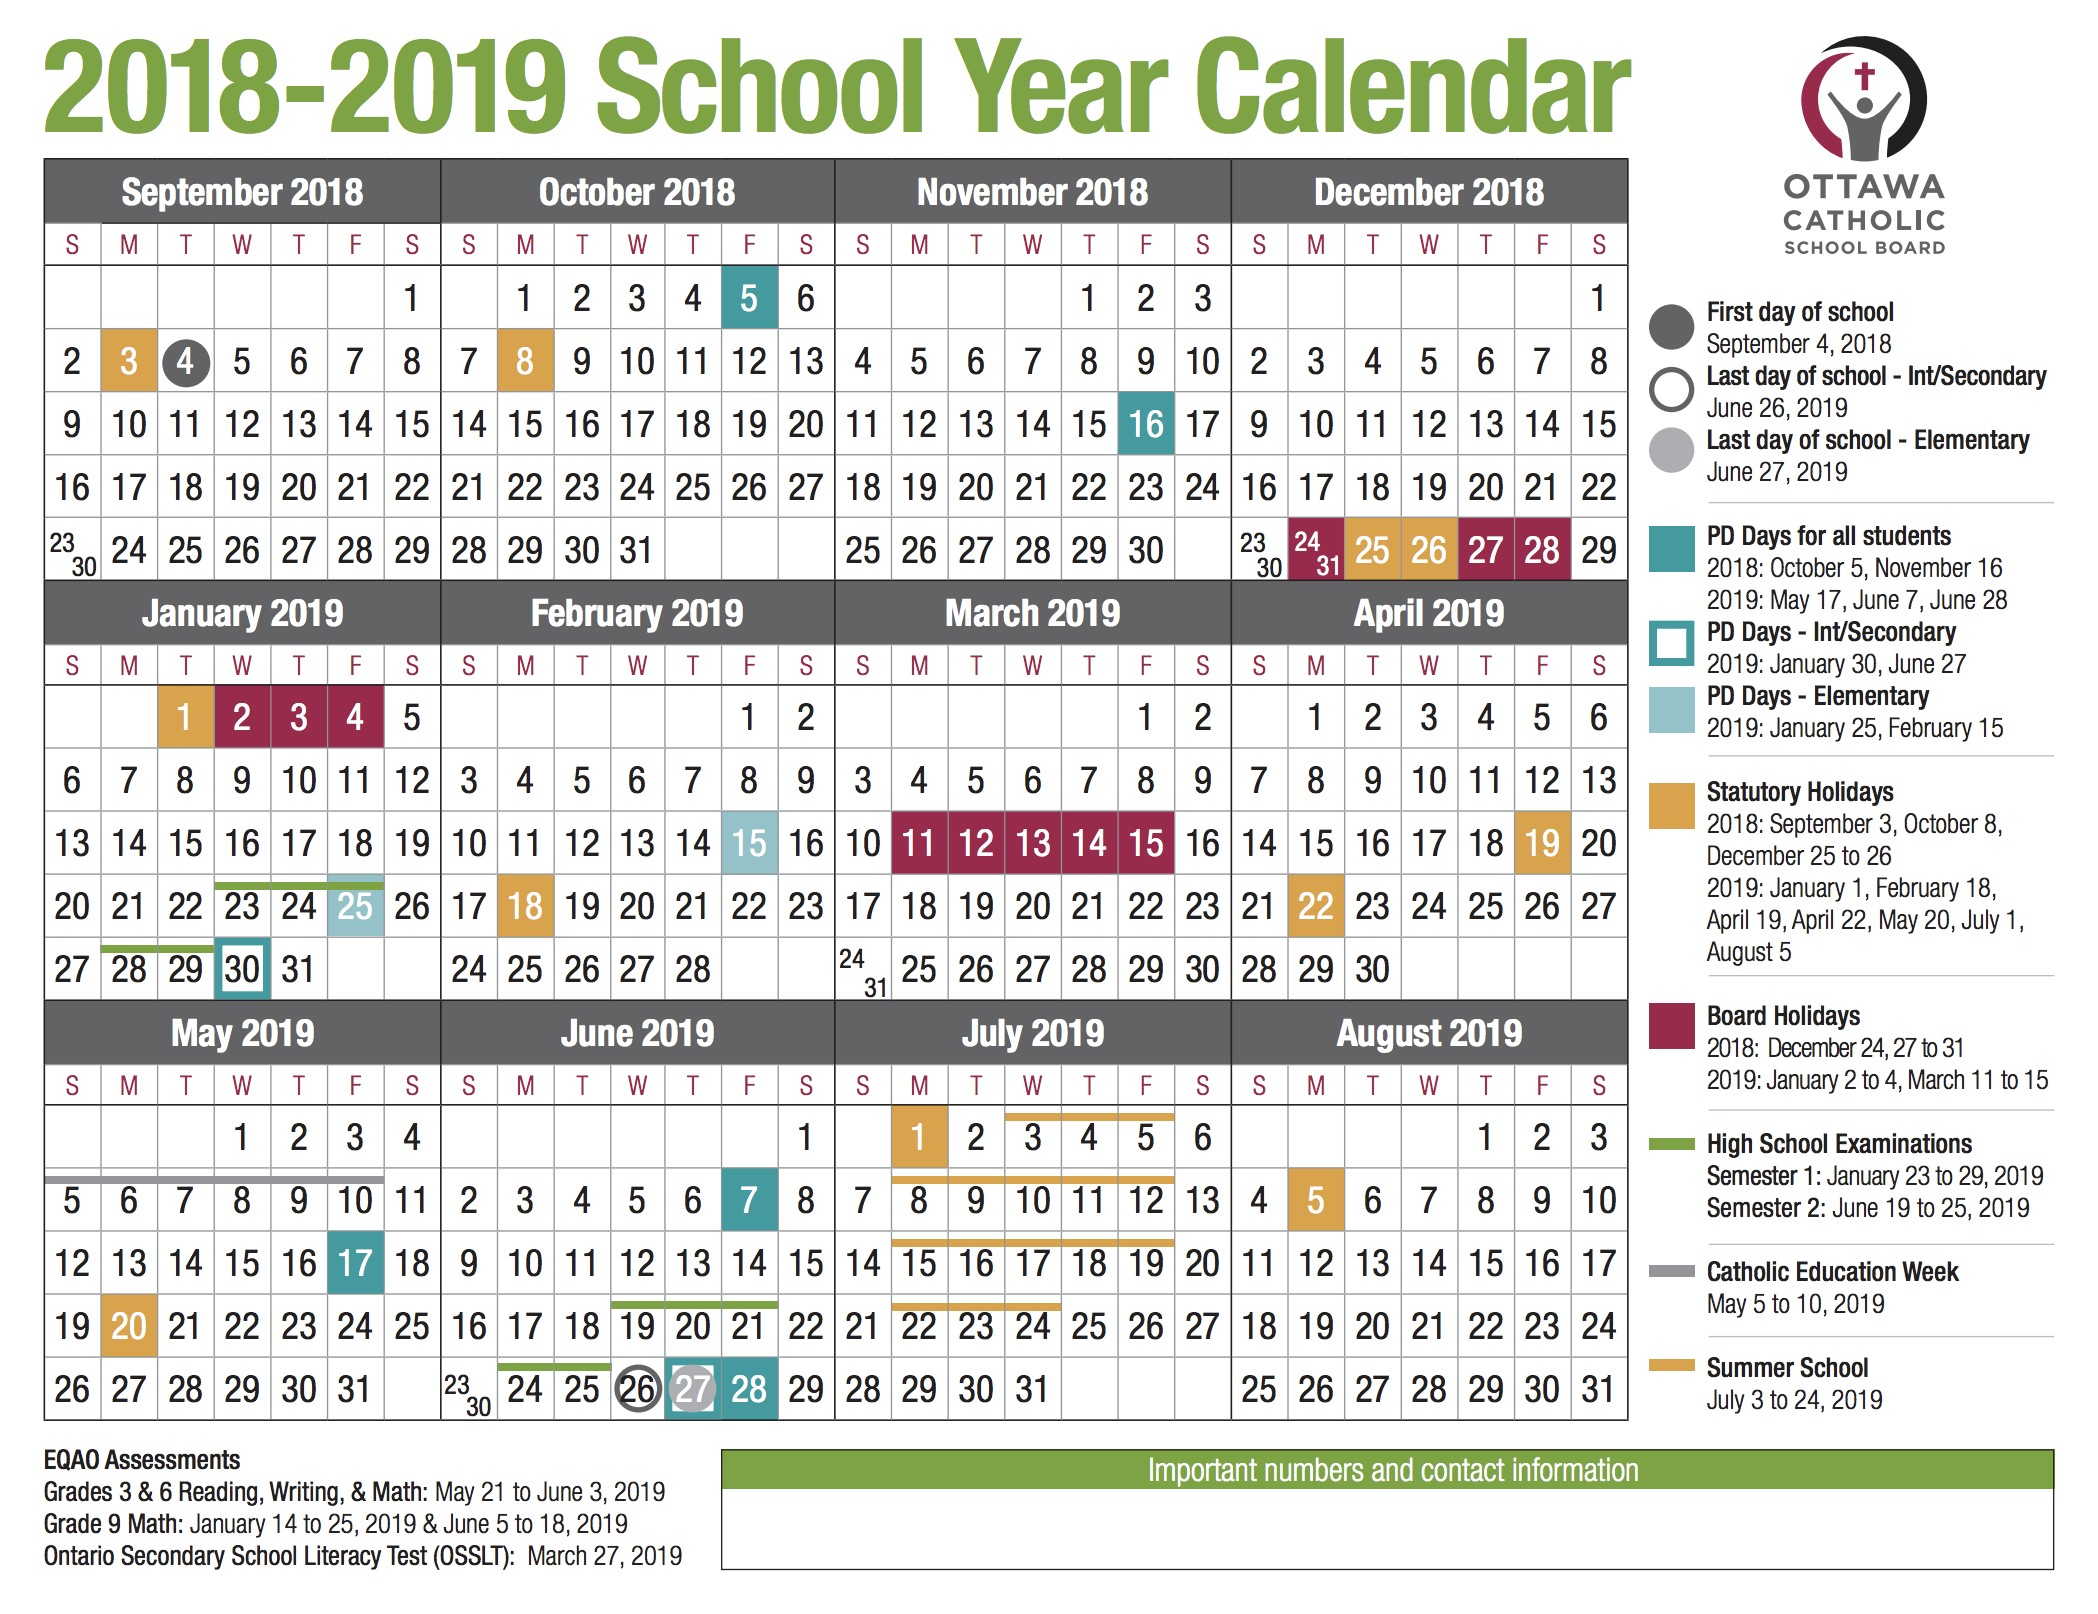 March 2019 Calendar Landscape Más Recientes School Year Calendar From the Ocsb Of March 2019 Calendar Landscape Más Recientes 2010 Calendar